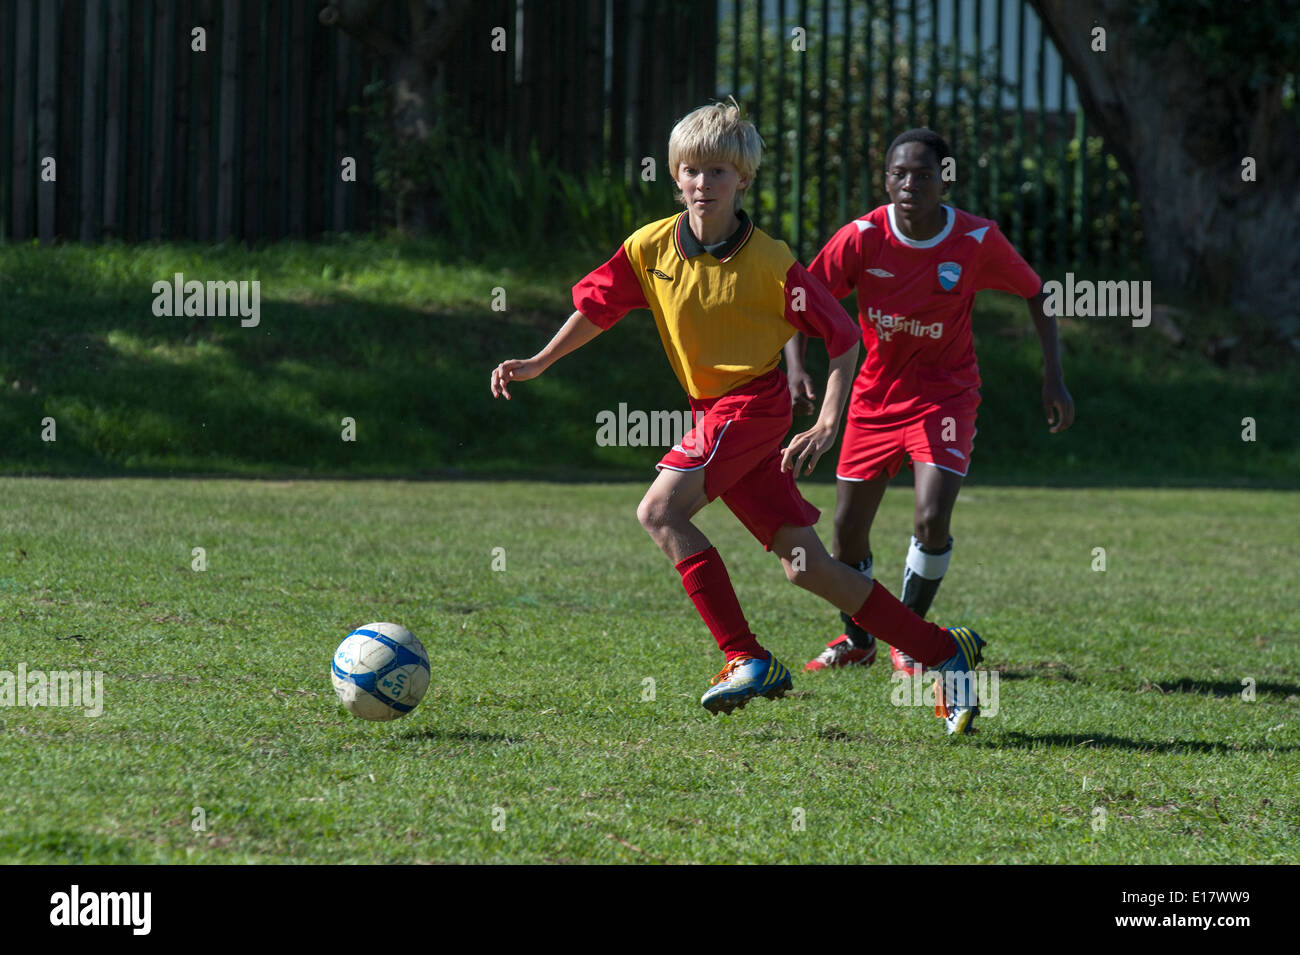 Junior football players running with the ball, Cape Town, South Africa - Stock Image